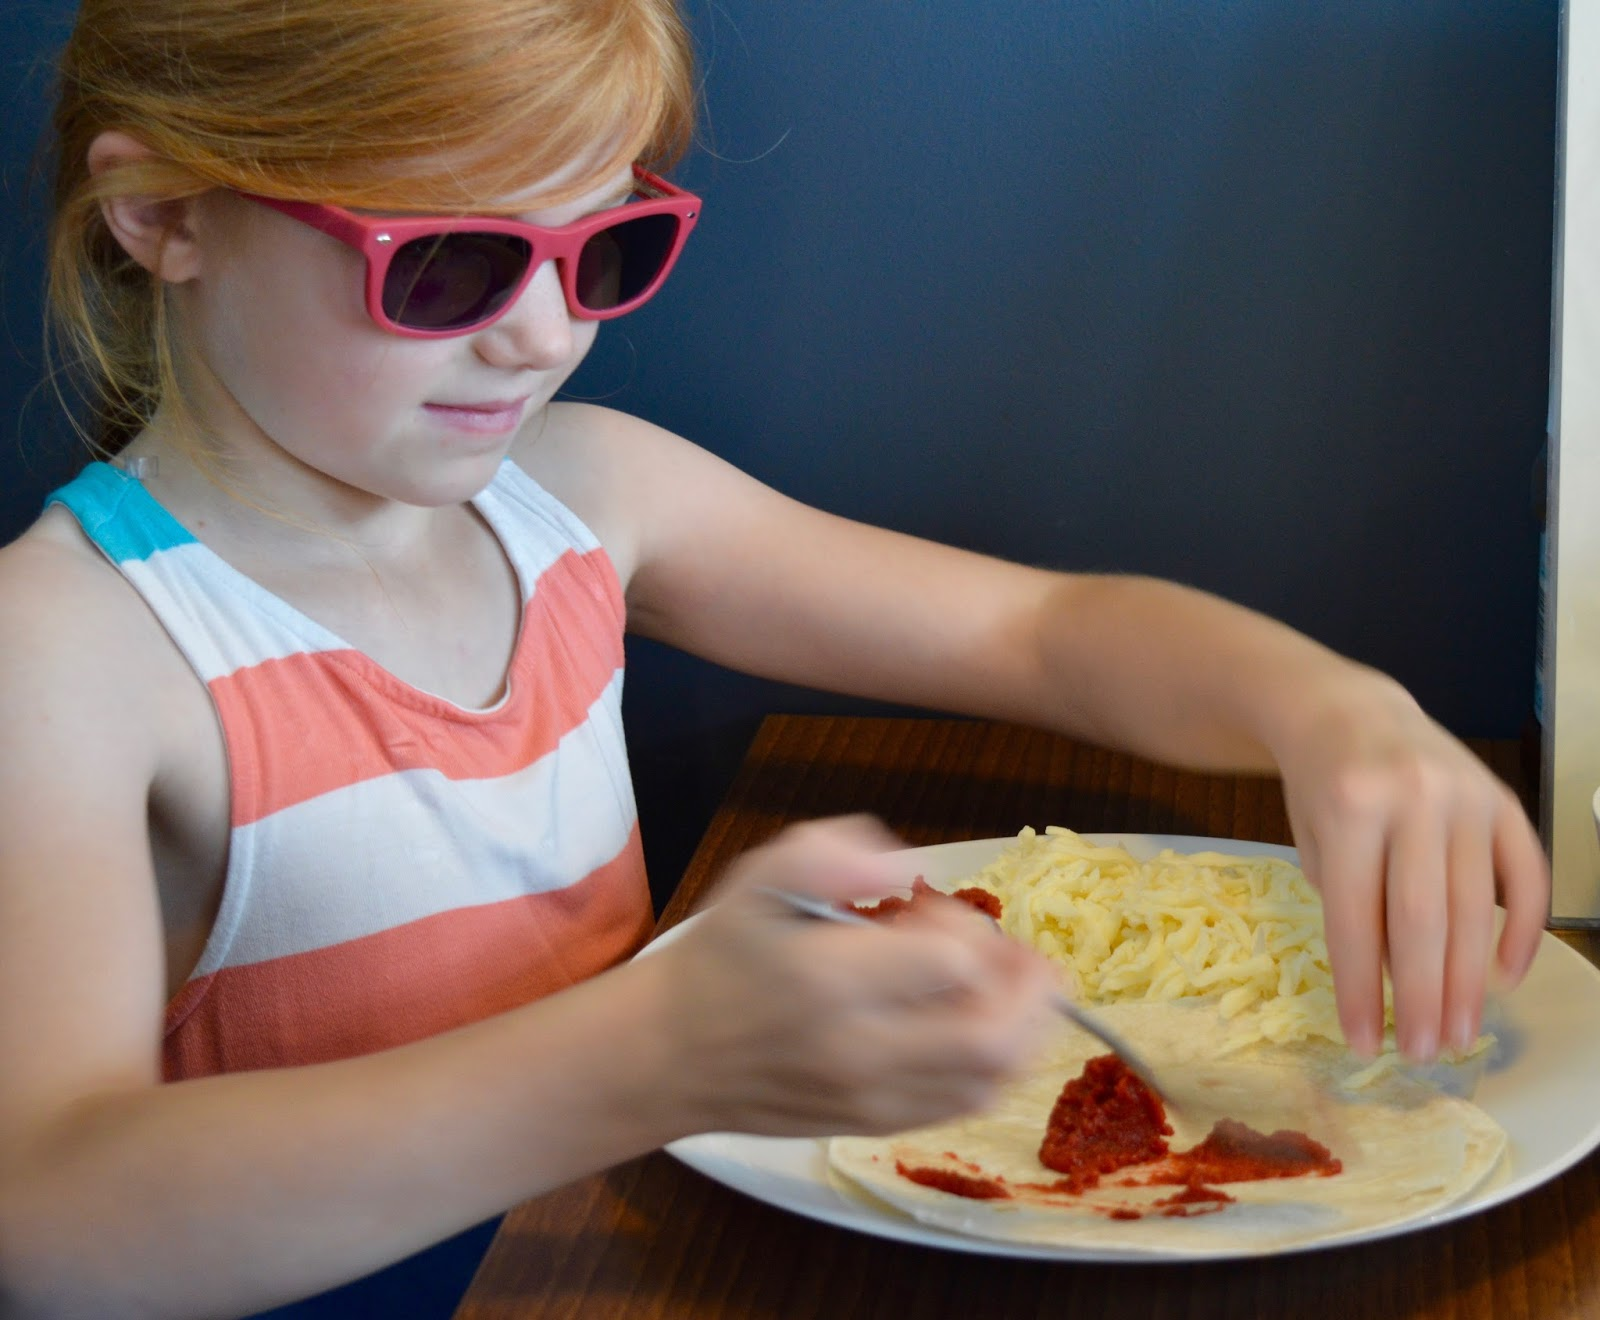 Cafe 32 | Linskill Centre, North Shields - A review - children's menu - make your own tortilla pizza